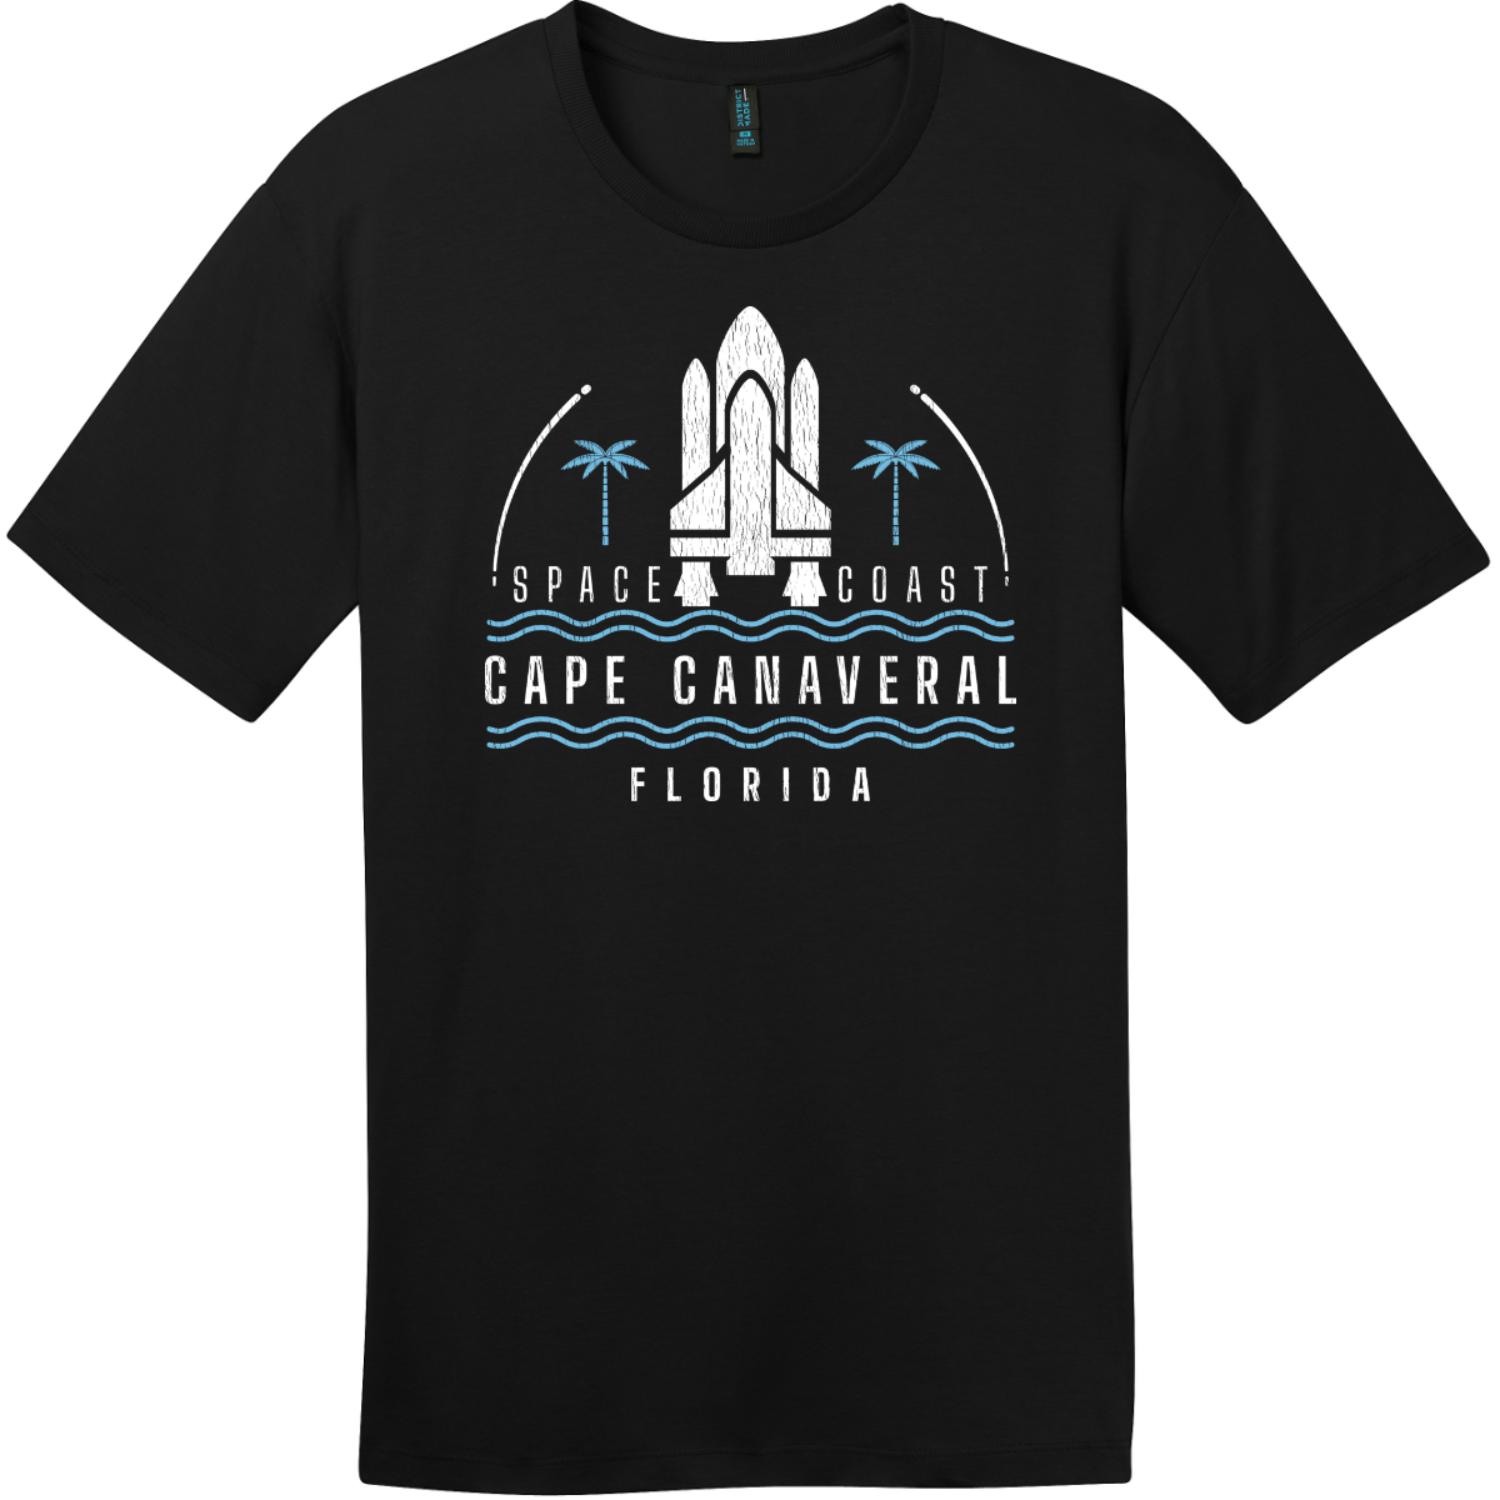 Cape Canaveral Space Coast Vintage T-Shirt Jet Black District Perfect Weight Tee DT104